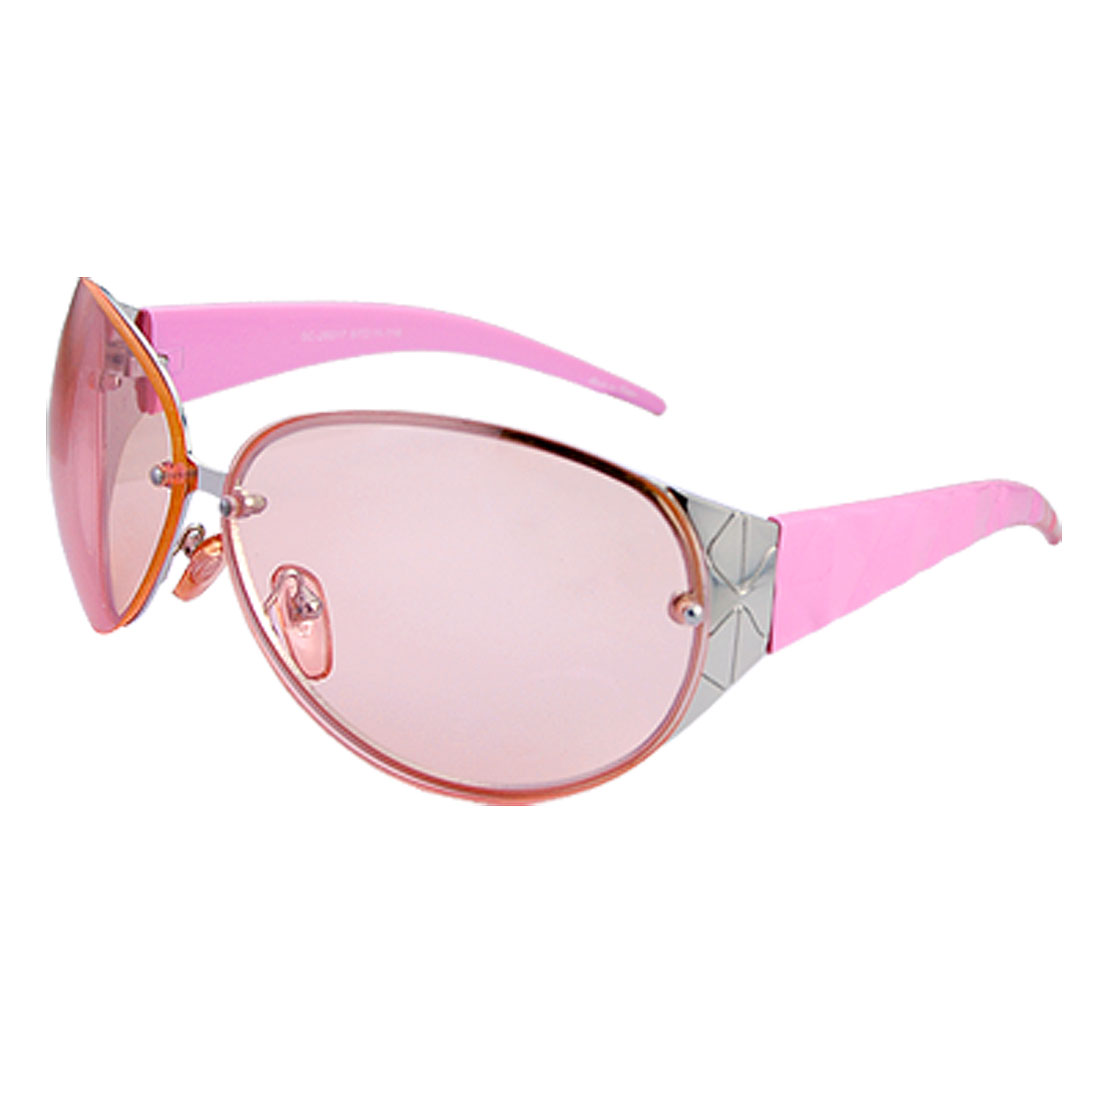 Sporty Ladies's Women's Sunglasses with Big Lenses and Wide Temple